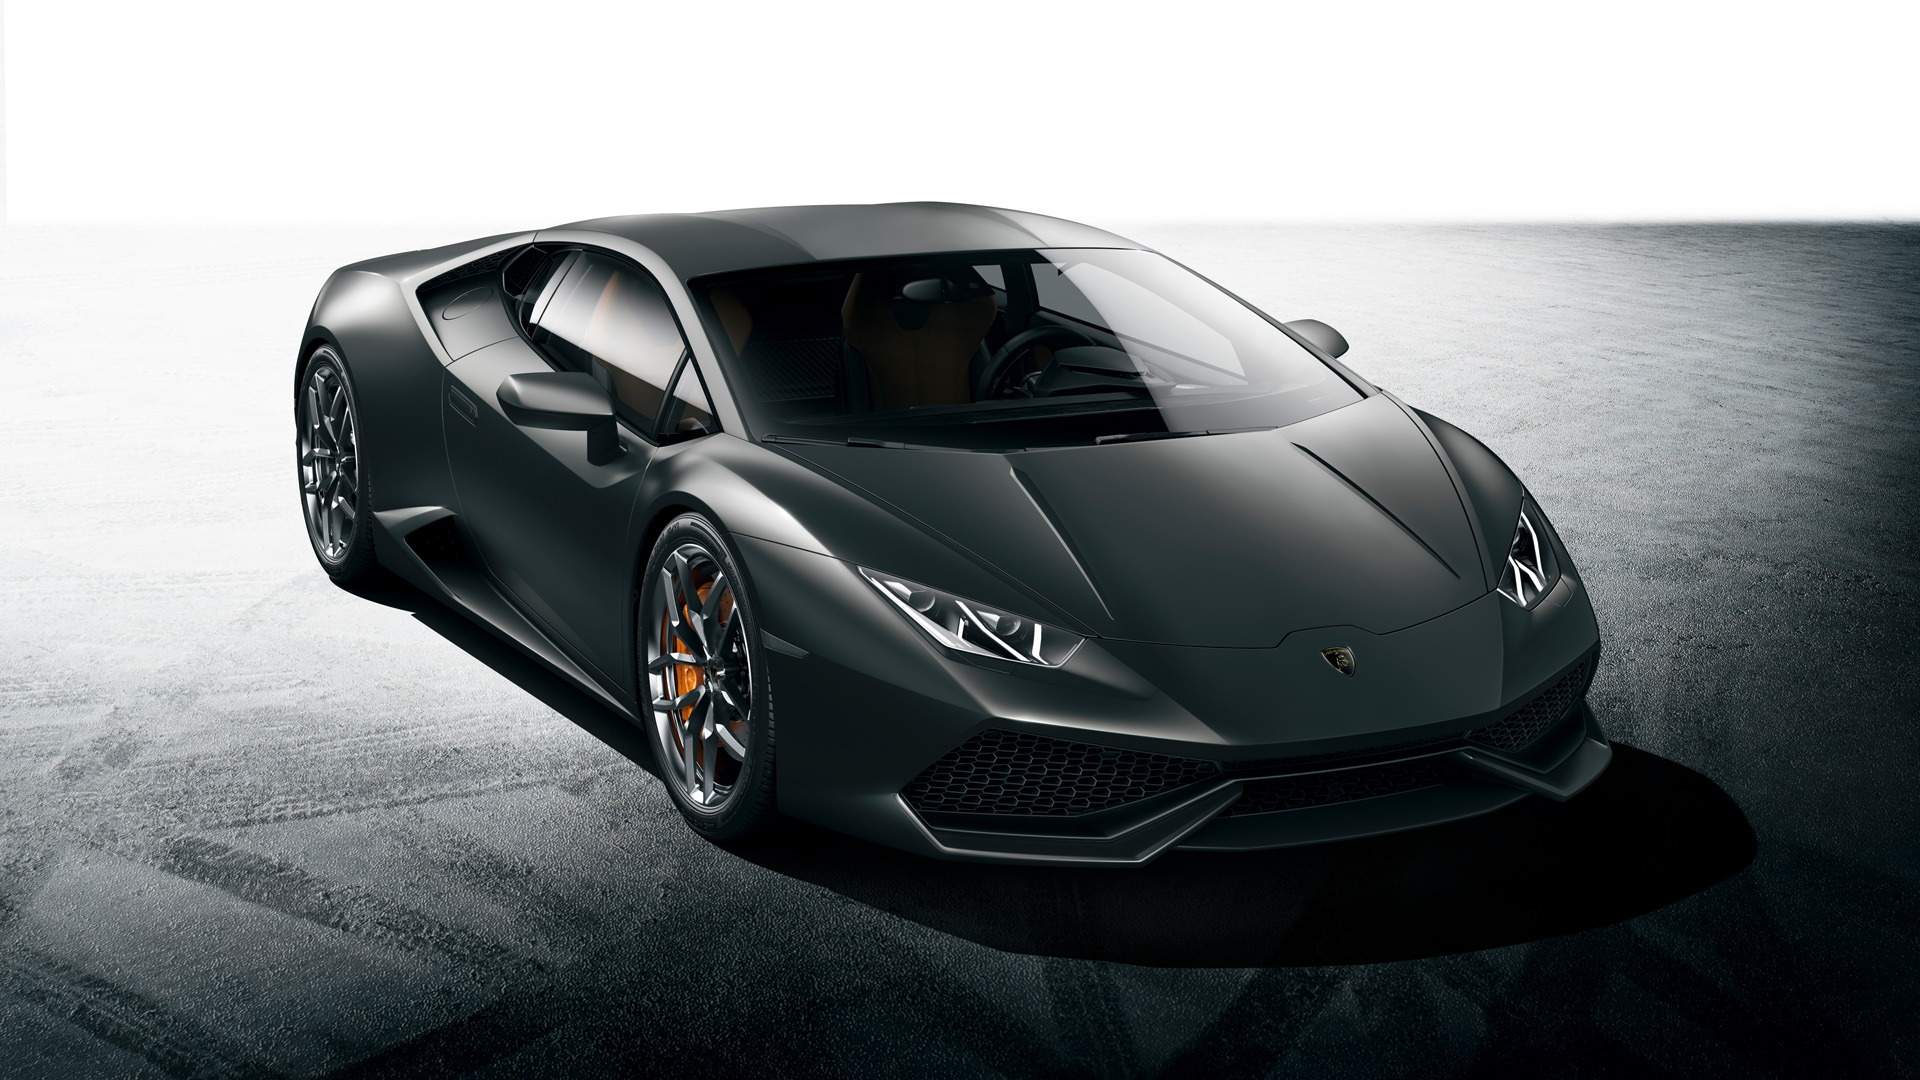 lamborghini huracan wallpapers hd 1371 wallpaper cool walldiskpaper - Lamborghini Huracan Wallpaper